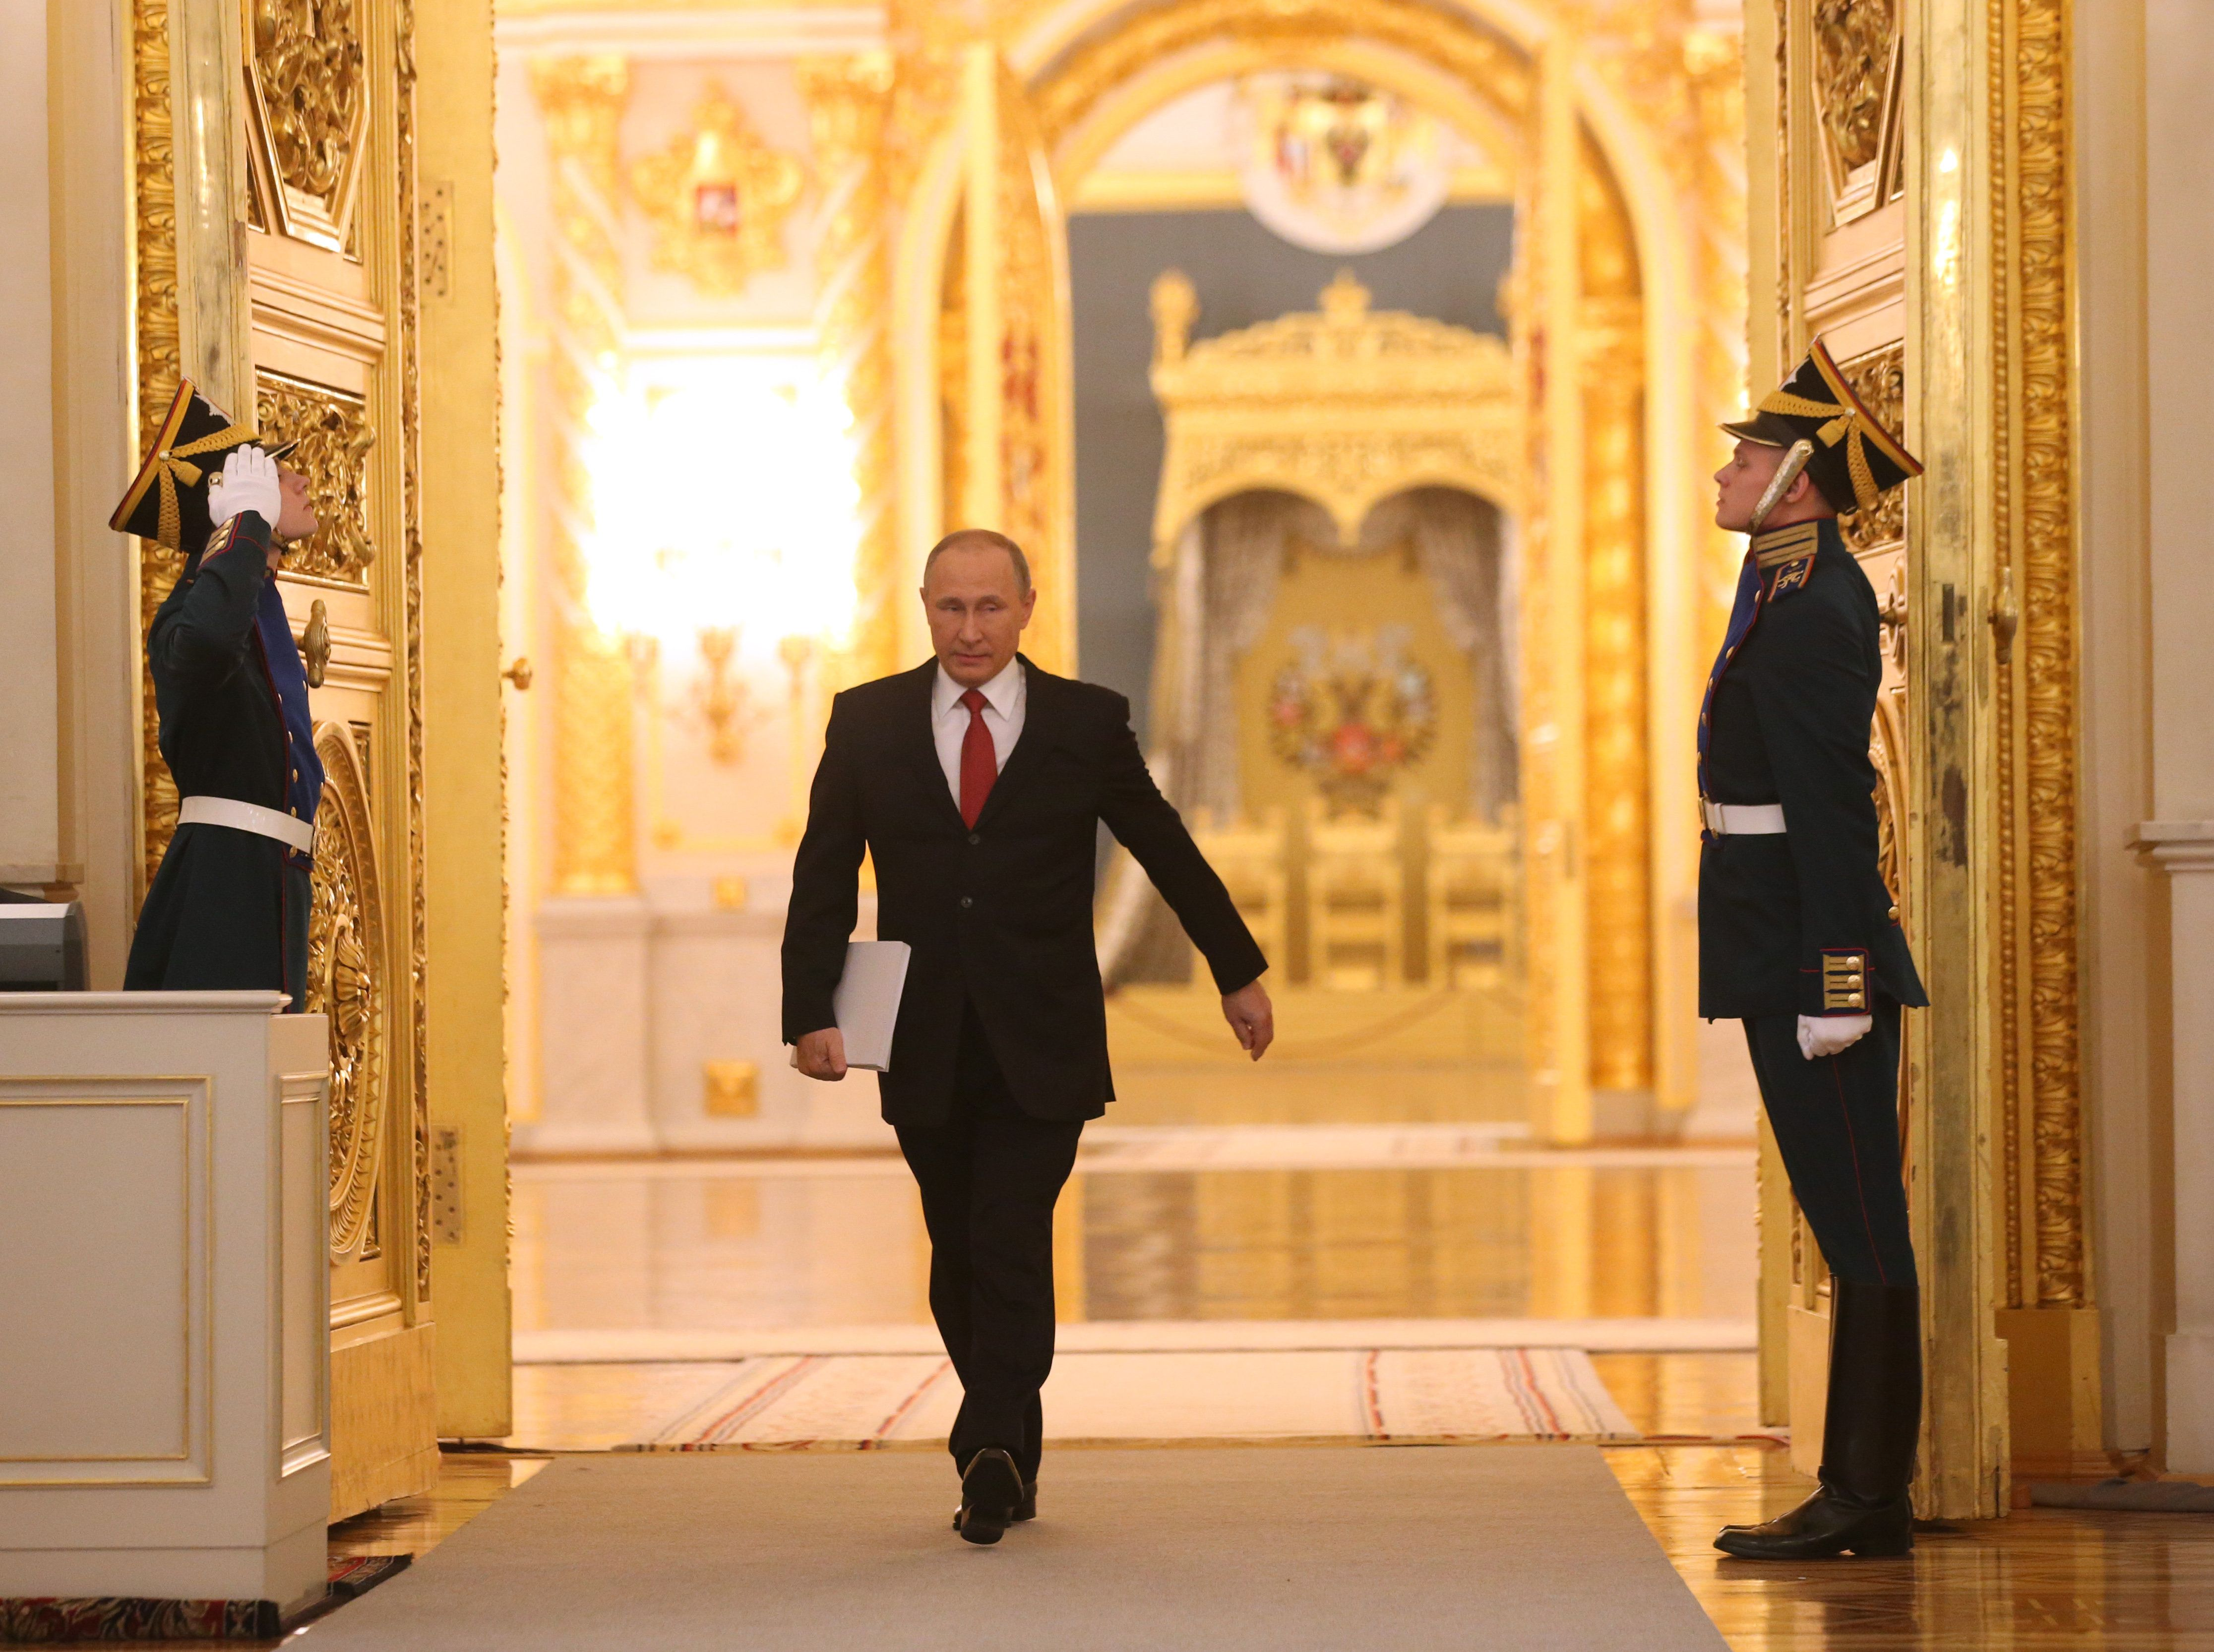 RUSSIA, MOSCOW - DECEMBER 1:   (RUSSIA OUT) Russian President Vladimir Putin enters the hall to deliver his annual speech to the Federal Assembly at Grand Kremlin Palace on December, 1, 2016 in Moscow, Russia. Putin spoke favorably towards future bilateral ties with the US once Donald Trump takes office in January.  (Photo by Mikhail Svetlov/Getty Images)